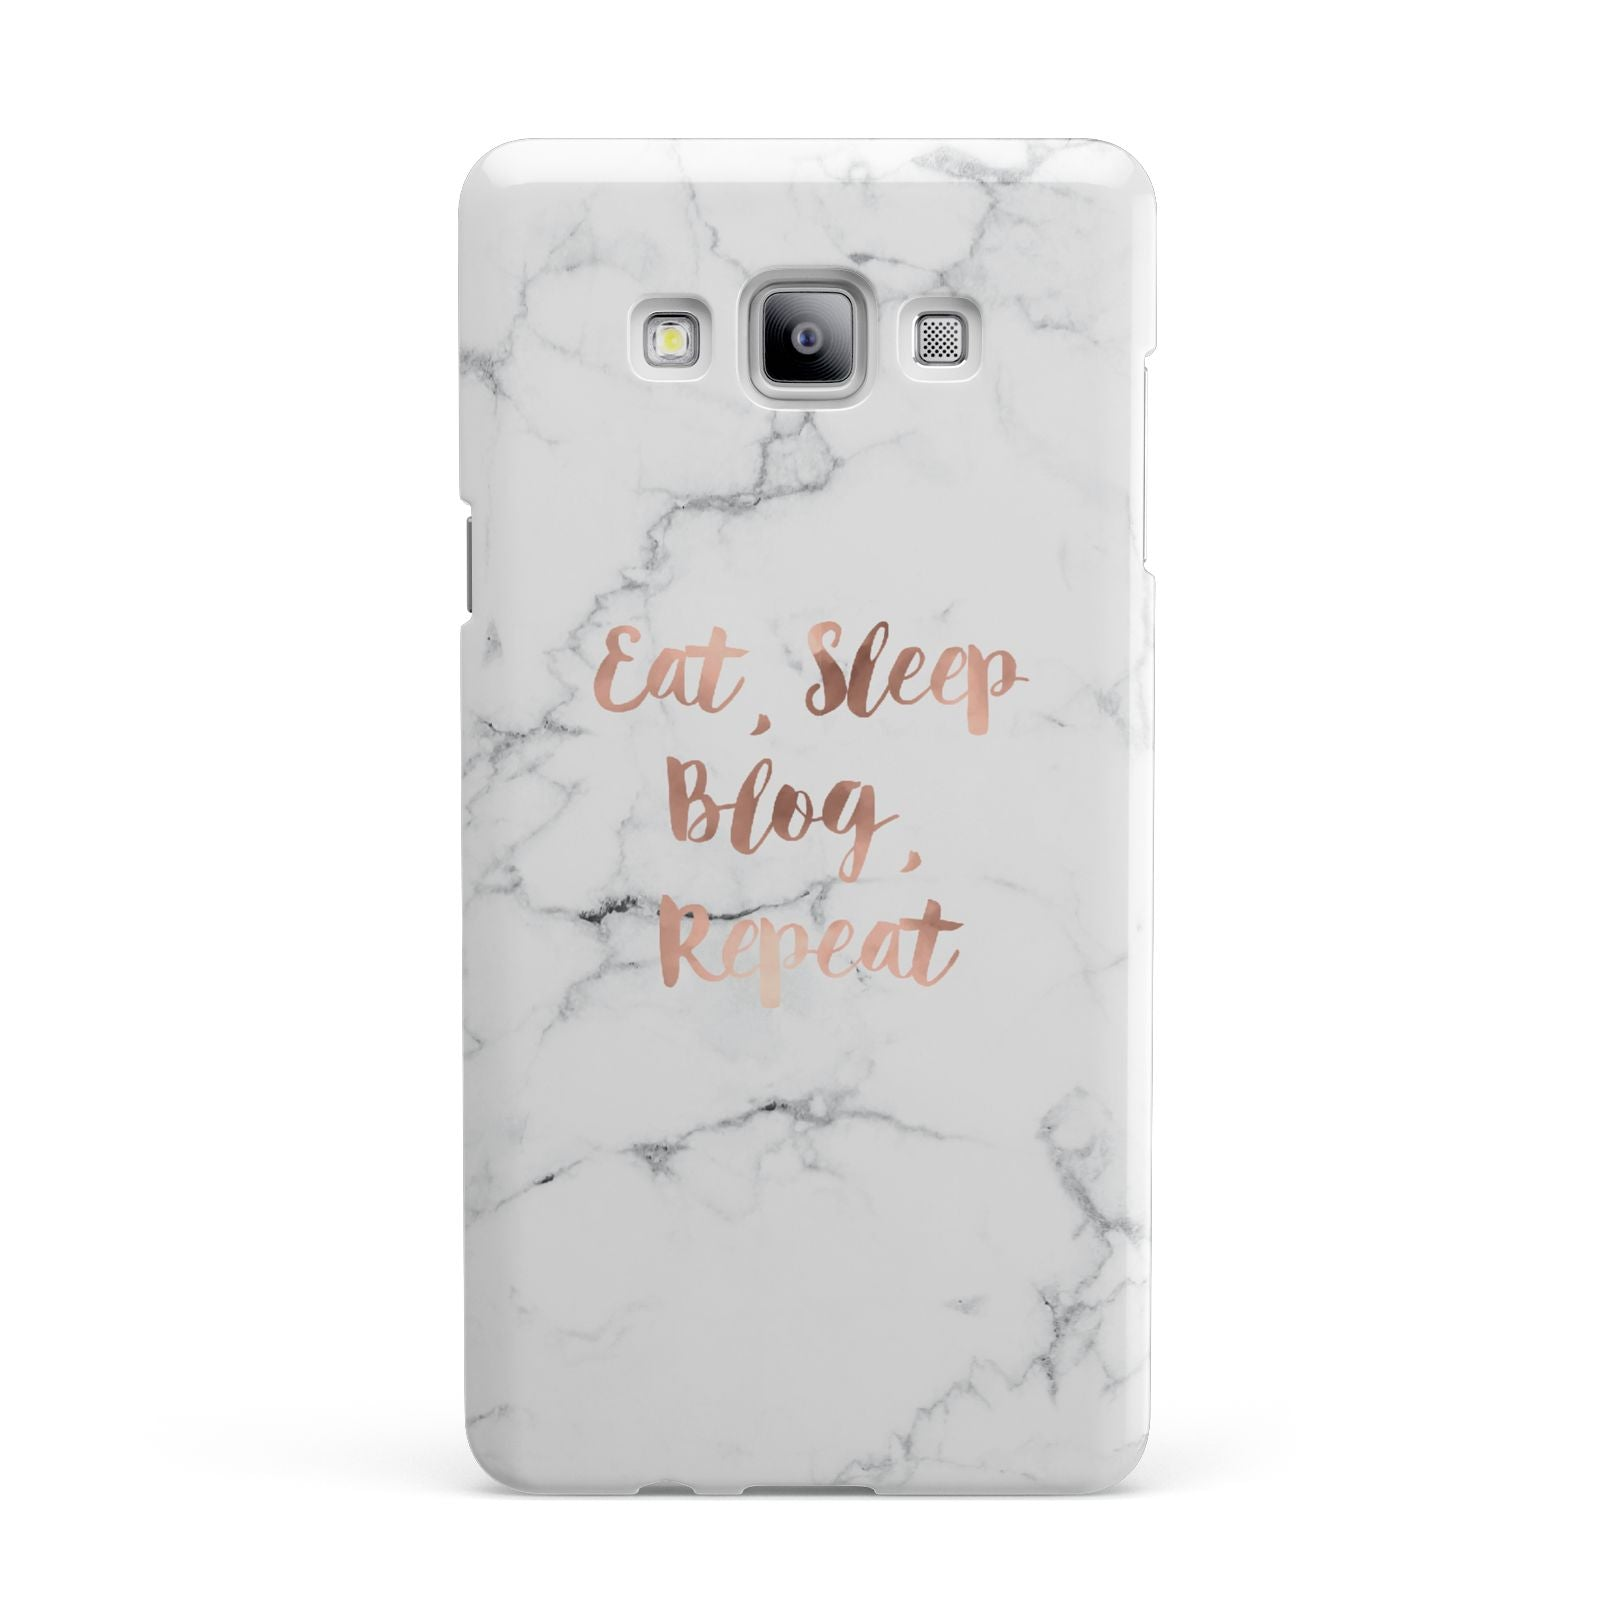 Eat Sleep Blog Repeat Marble Effect Samsung Galaxy A7 2015 Case